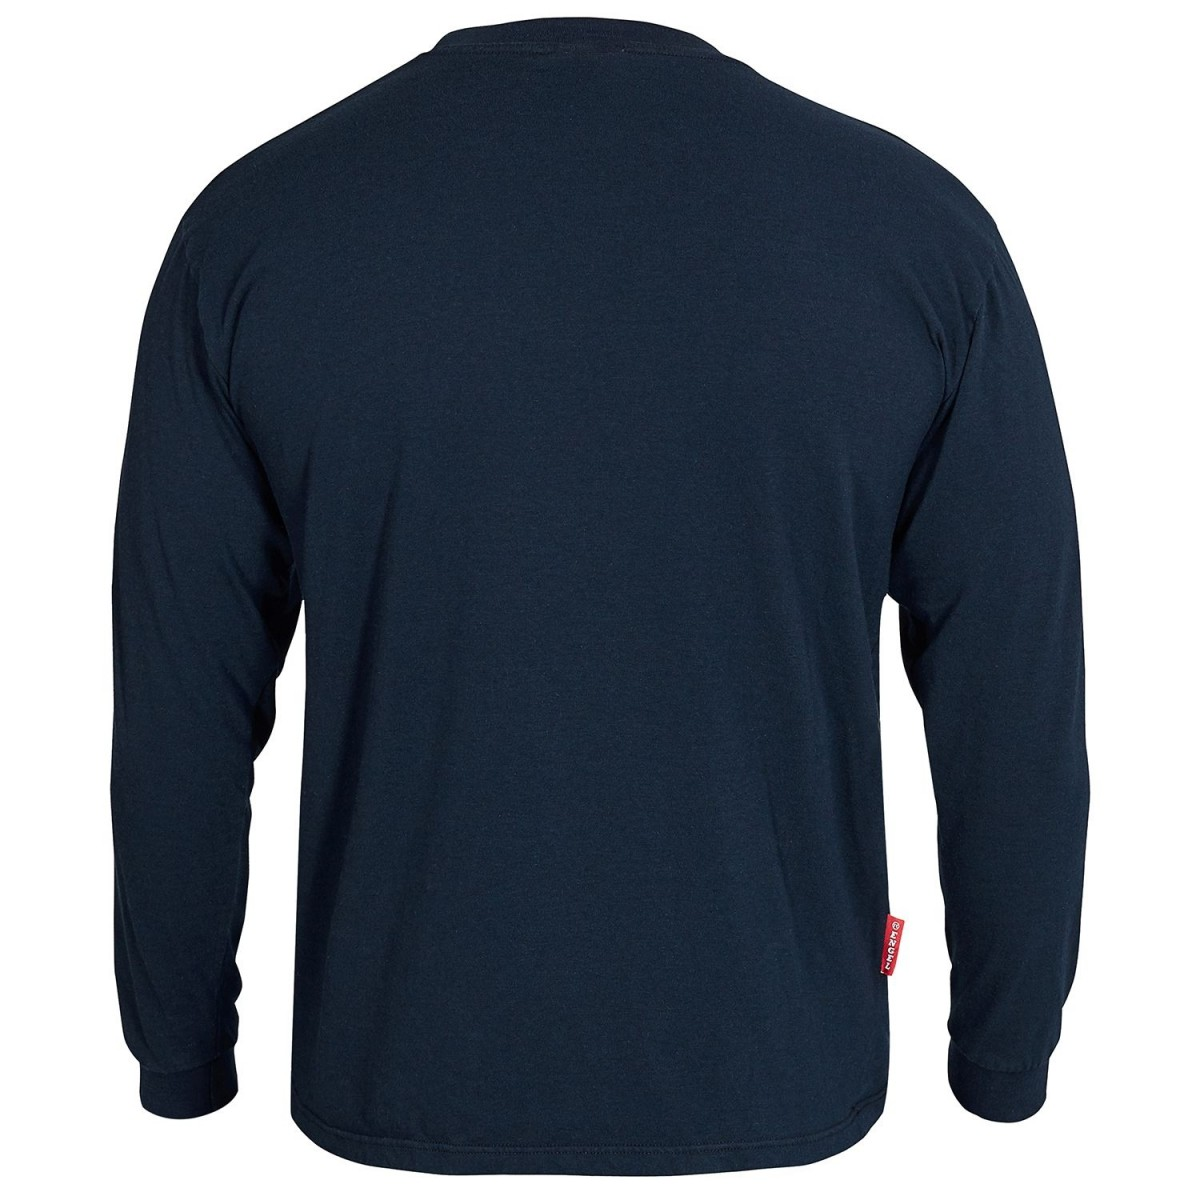 F. Engel Safety + Undertrøje L/S-31